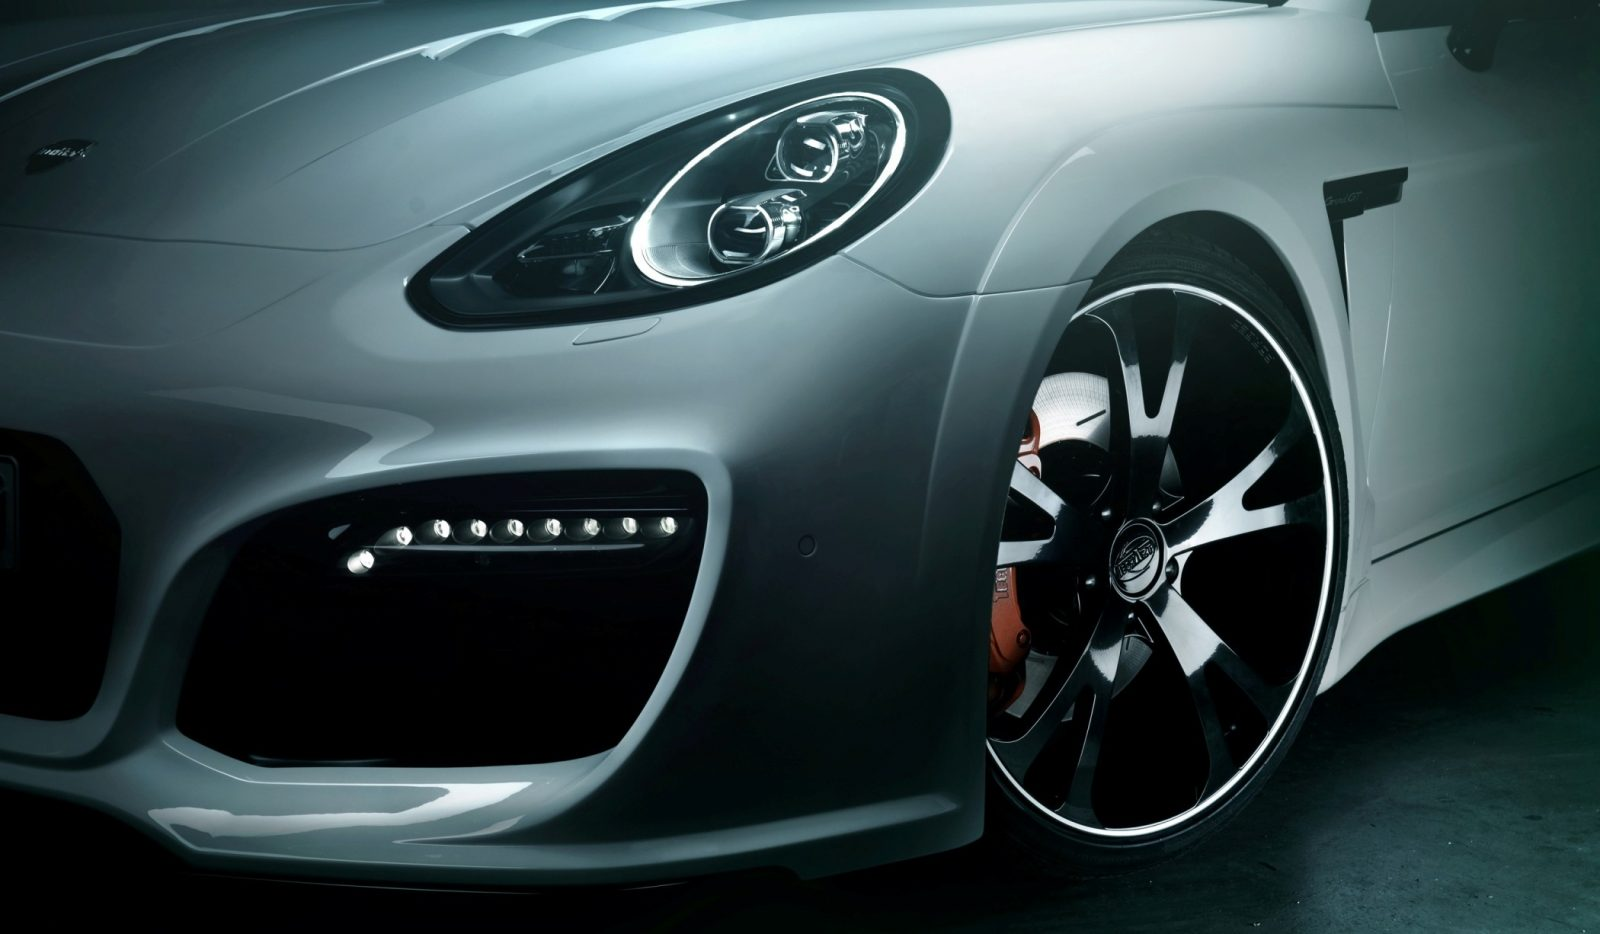 TECHART_GrandGT_for_Porsche_Panamera_Turbo_exterior6